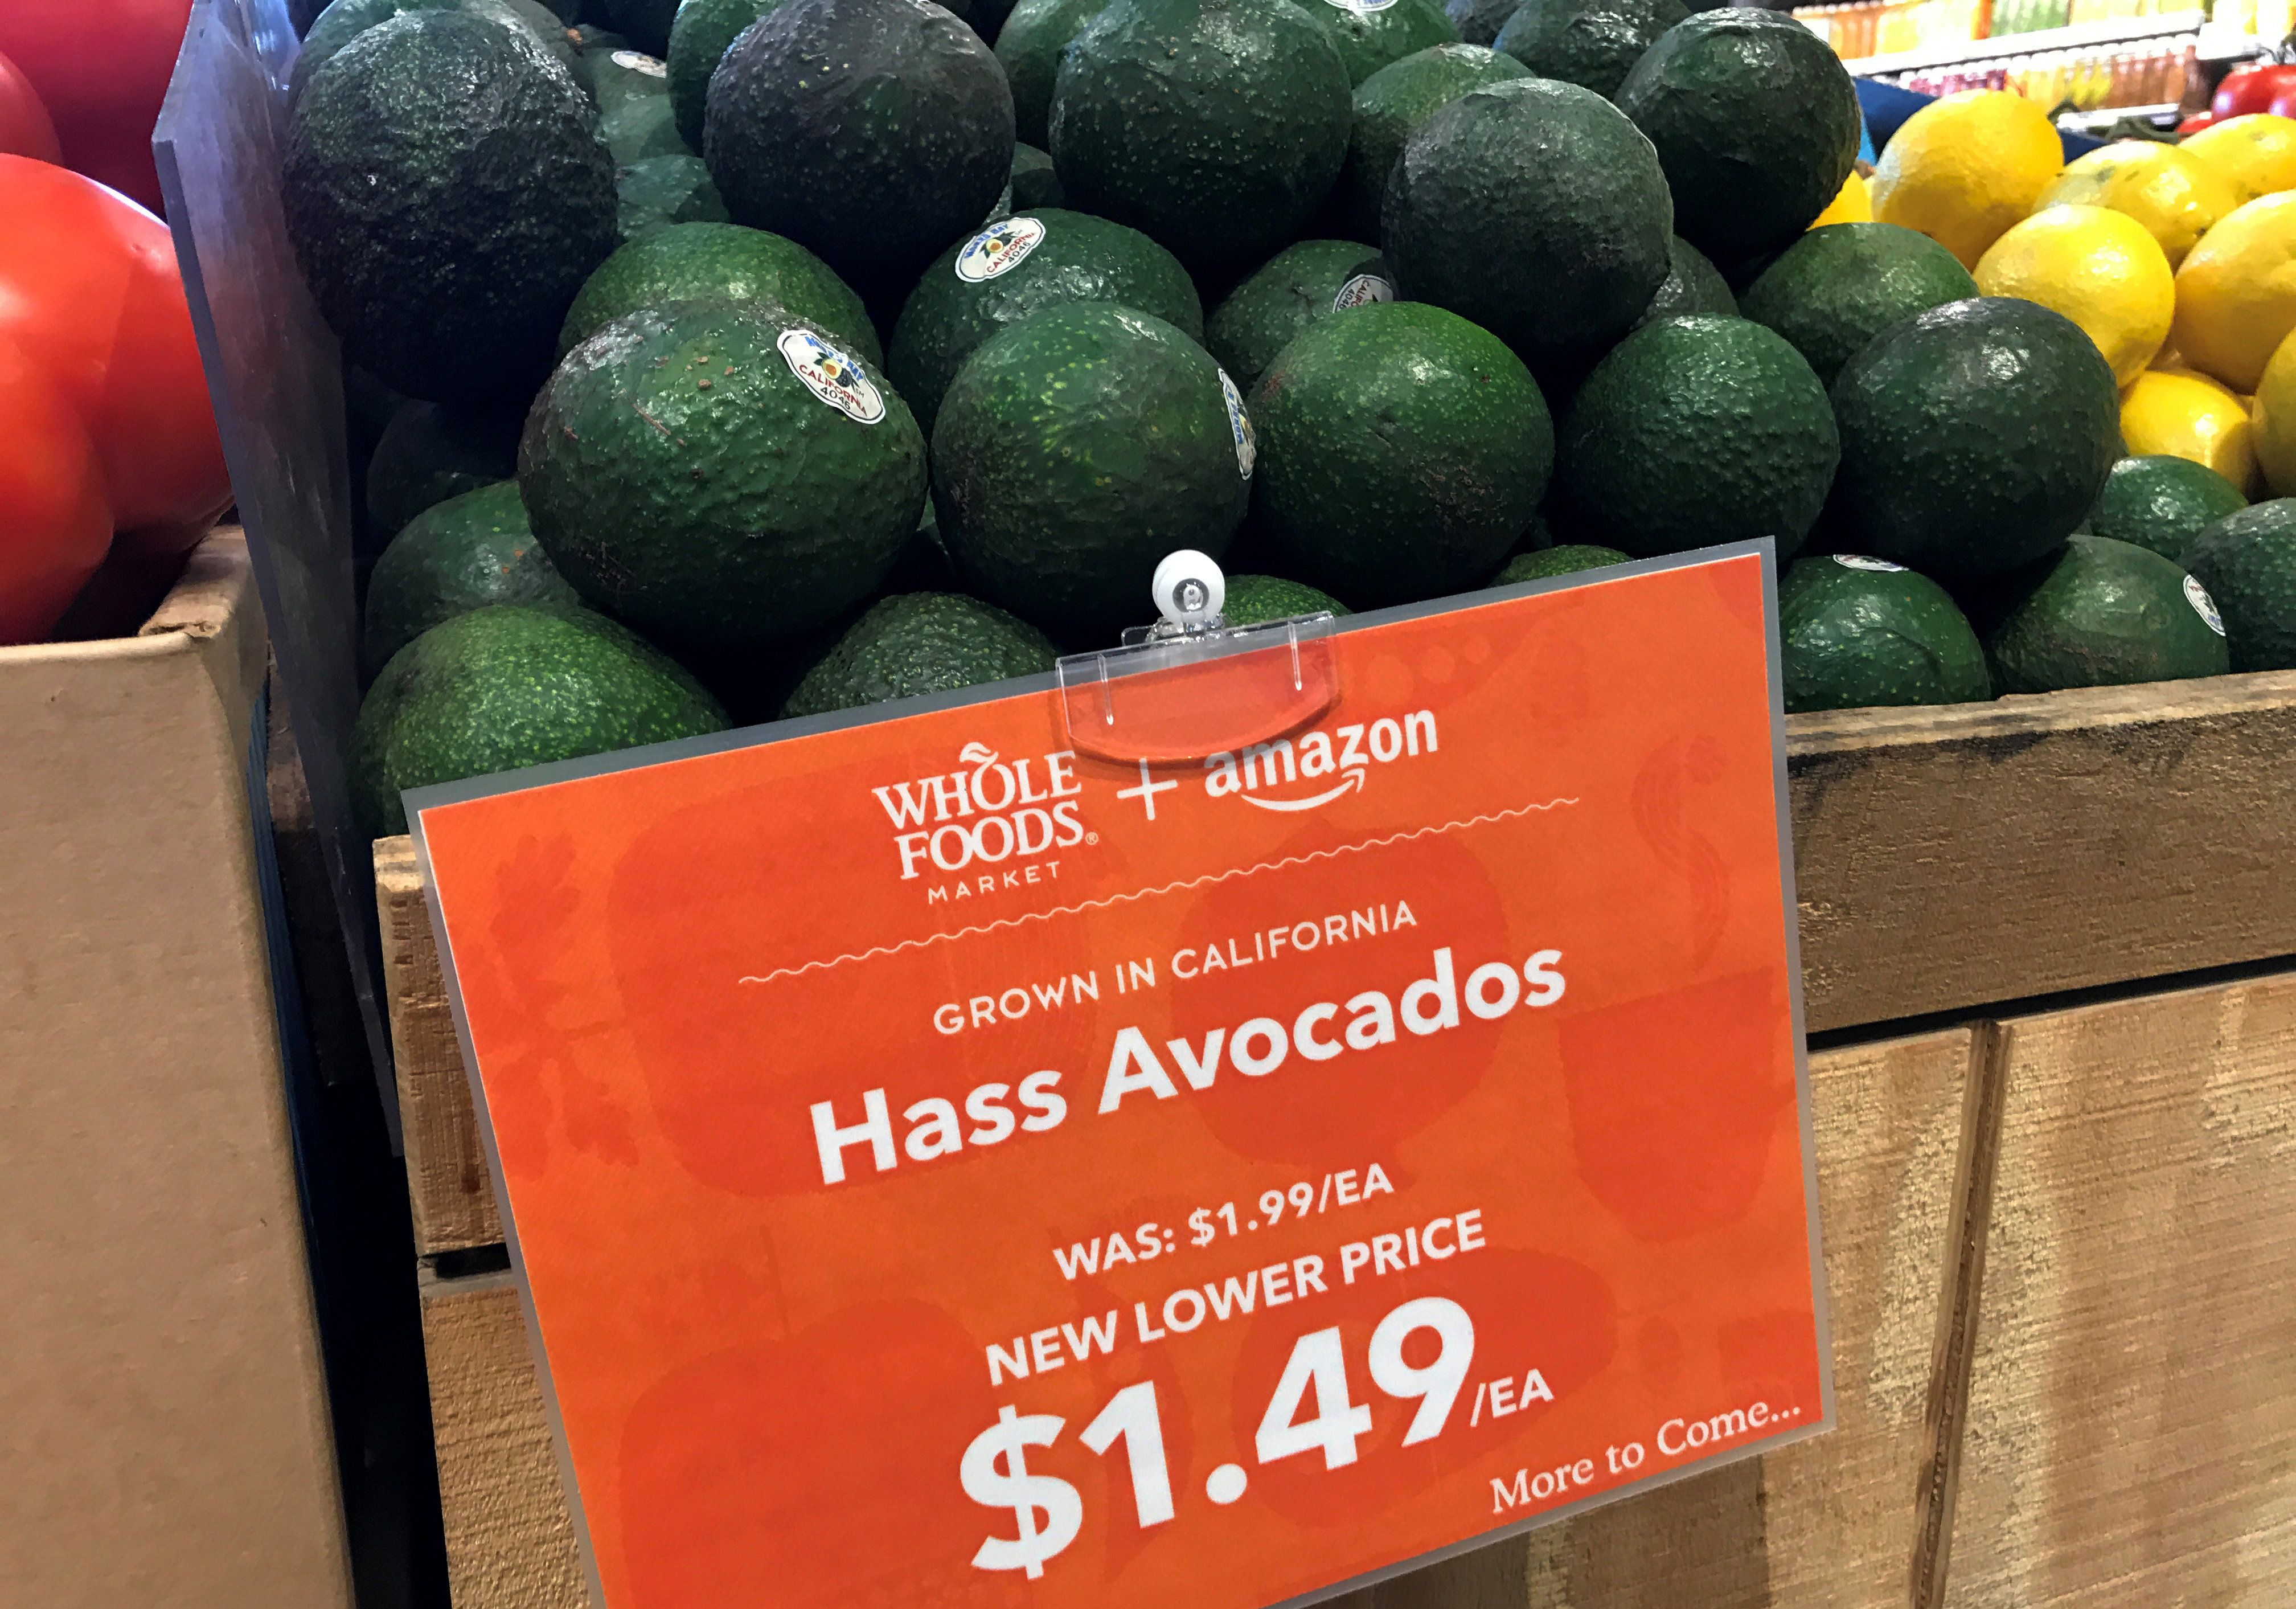 Avocadosat a Whole Foods store in San Diego, Californiaon August 28